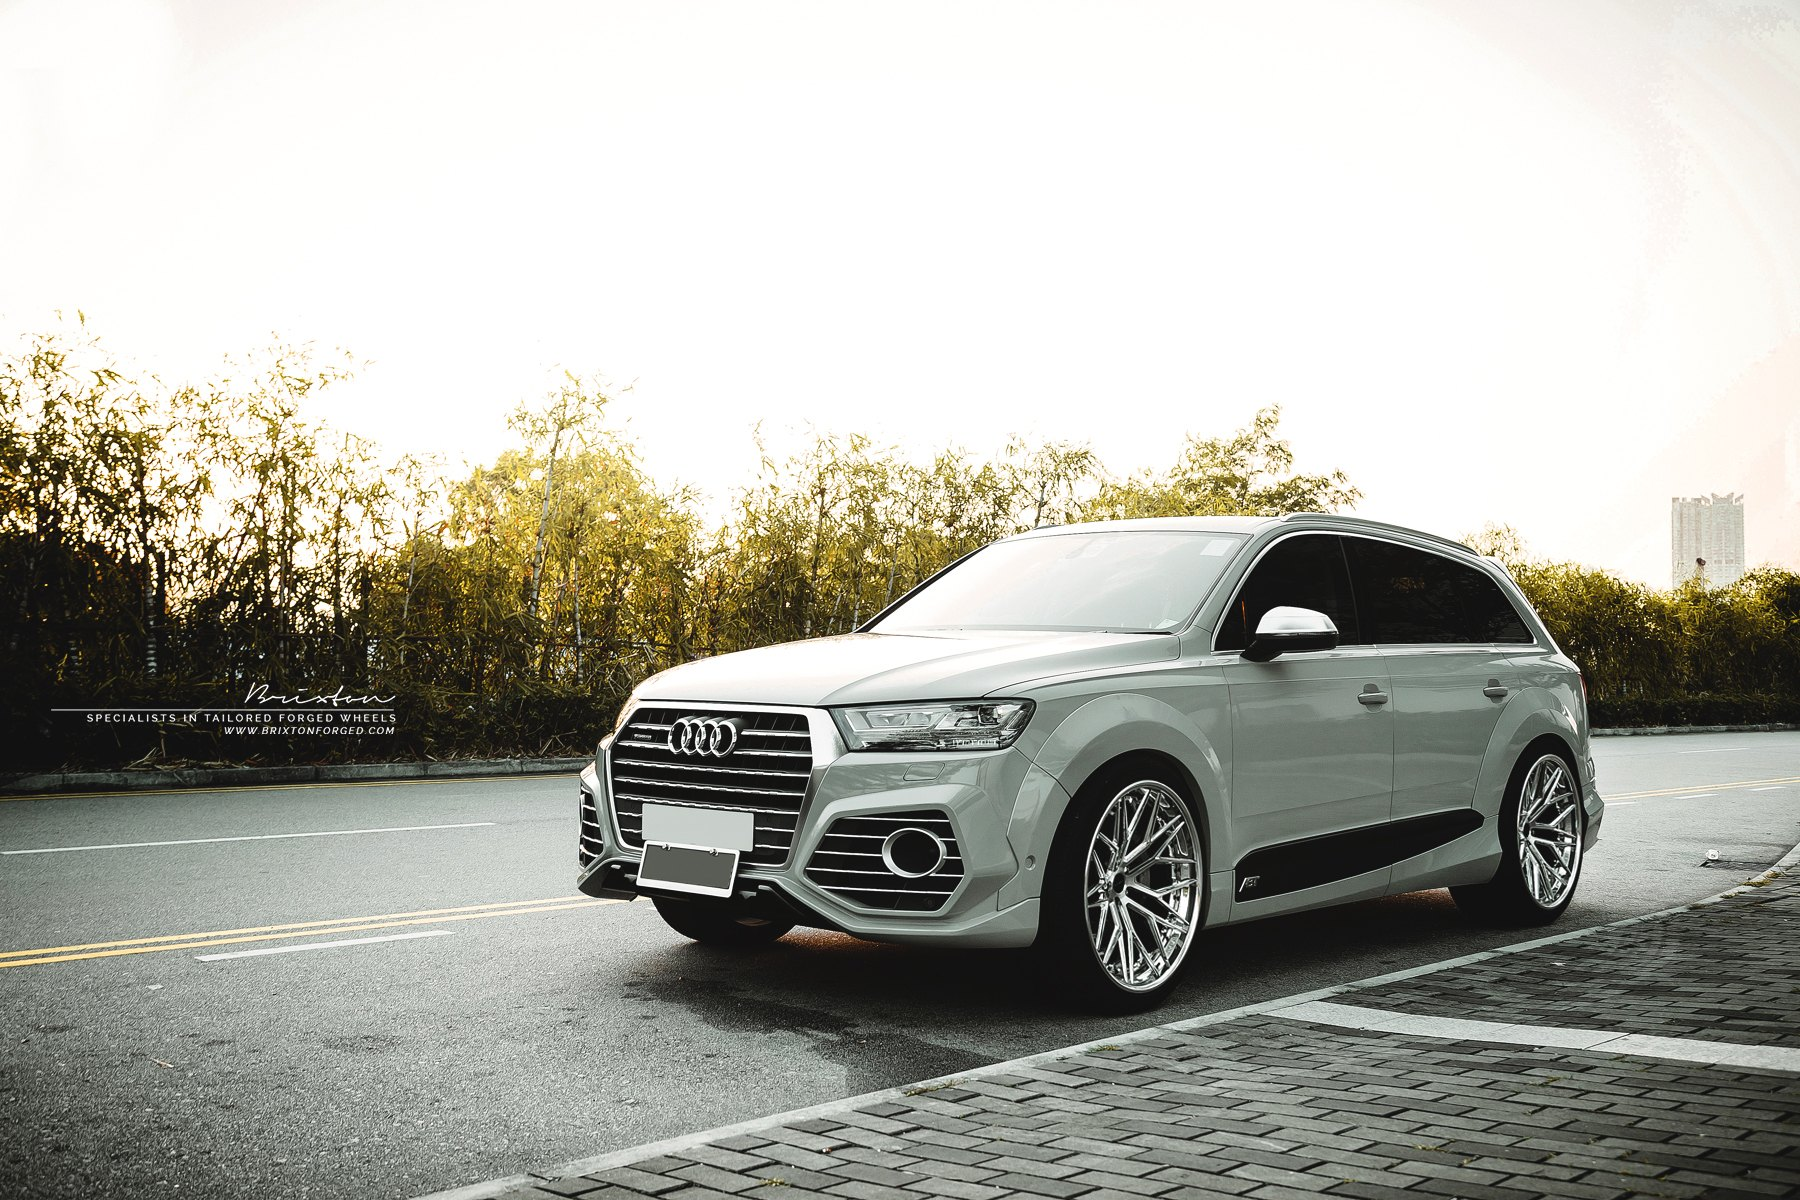 Custom 2018 Audi Q7 Images Mods Photos Upgrades